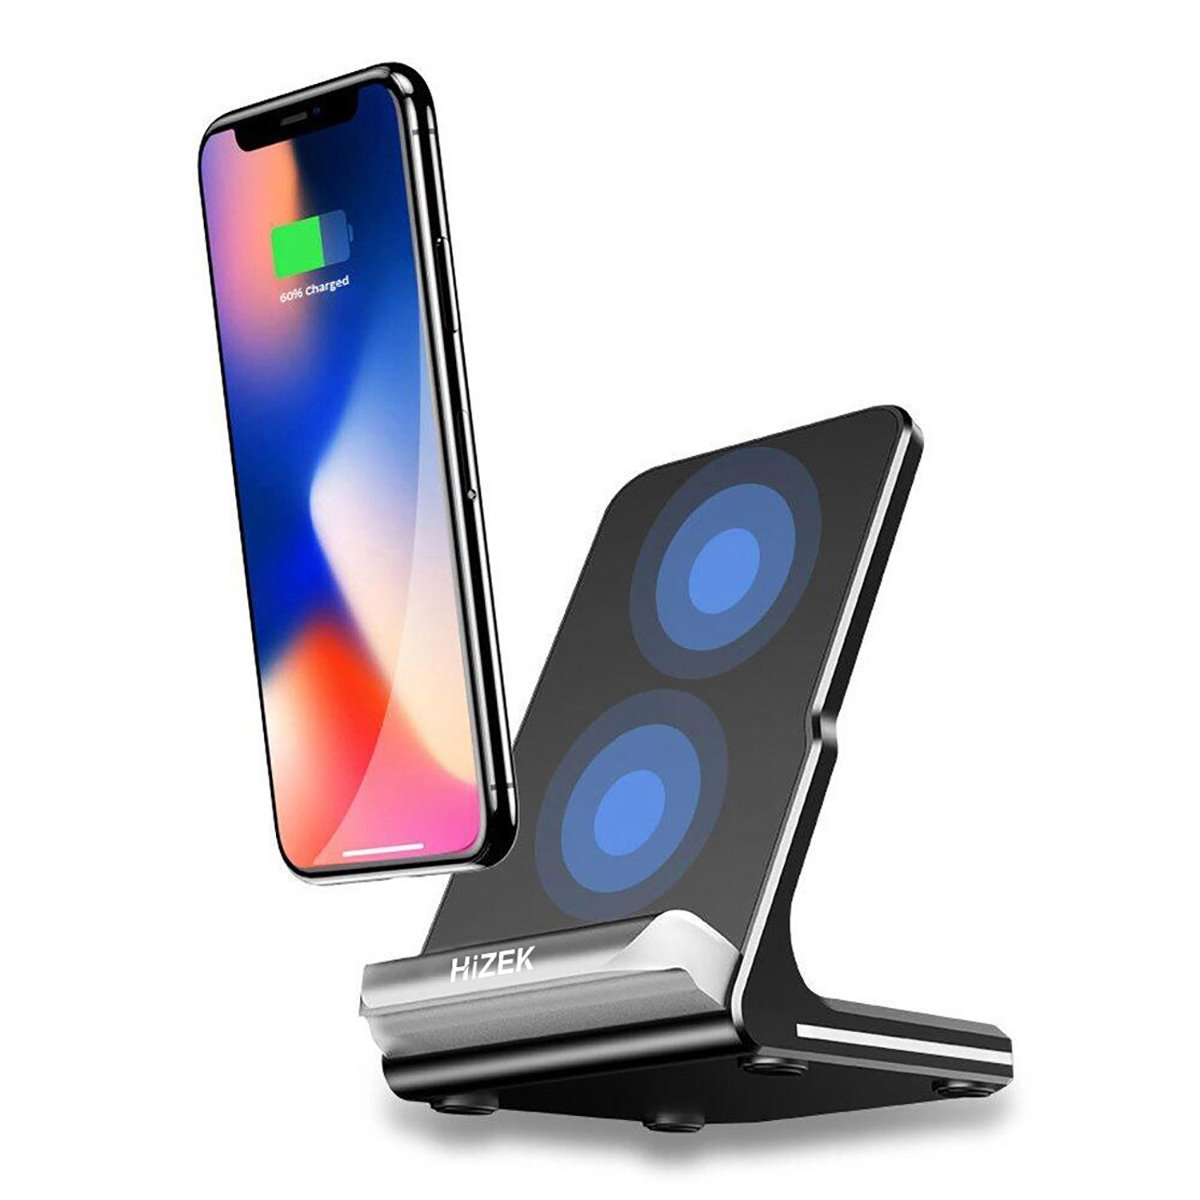 Wireless Charger, Hizek Qi Wireless: Amazon.de: Computer & Zubehör